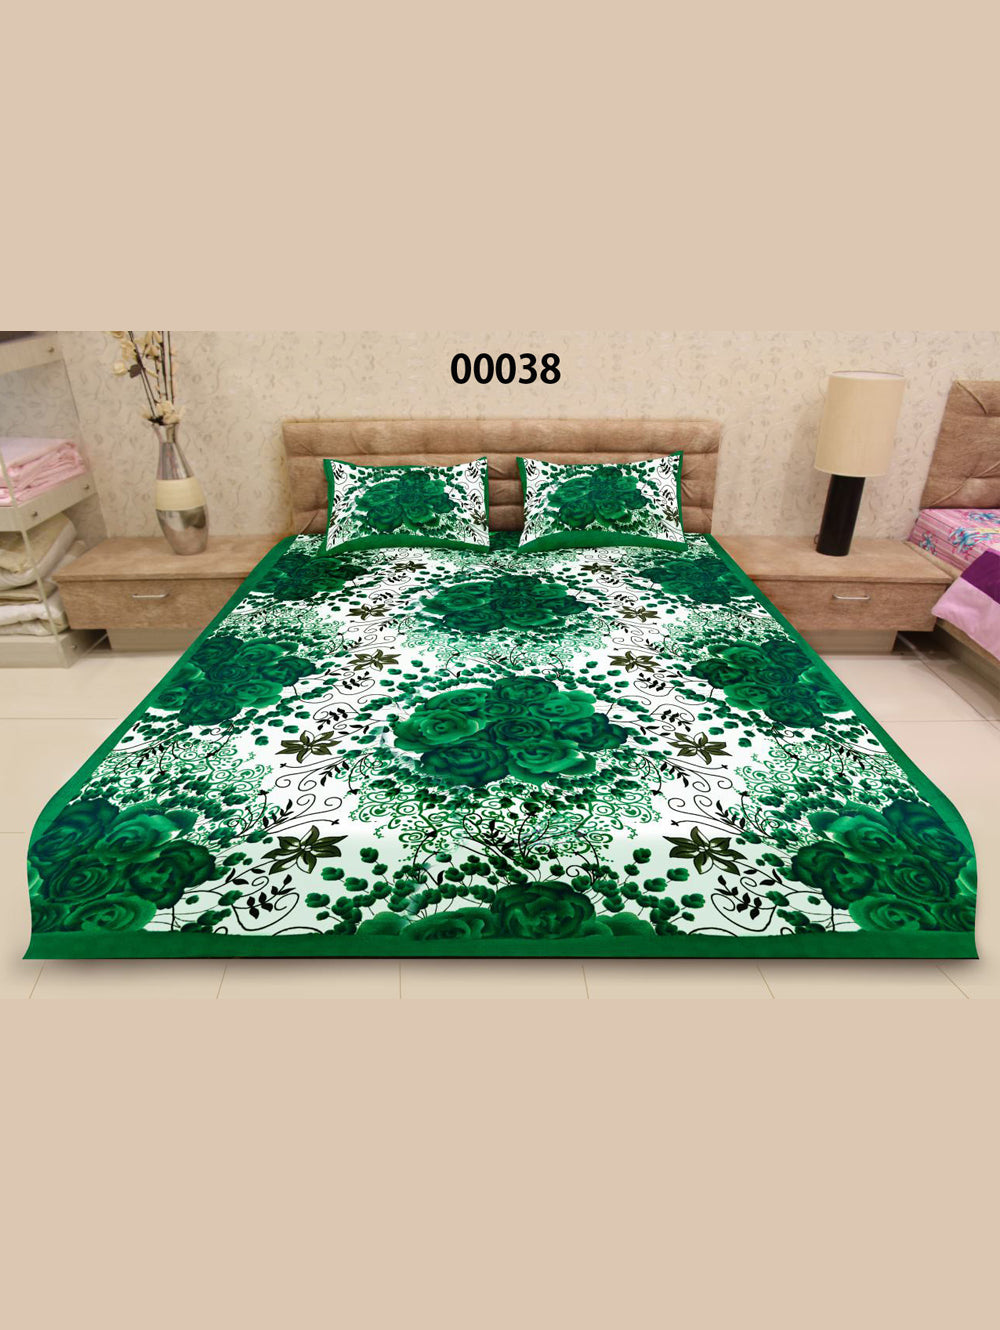 00038Green and White Ethnic Cotton Queen Size Floral Bedsheet With 2 Pillow Covers